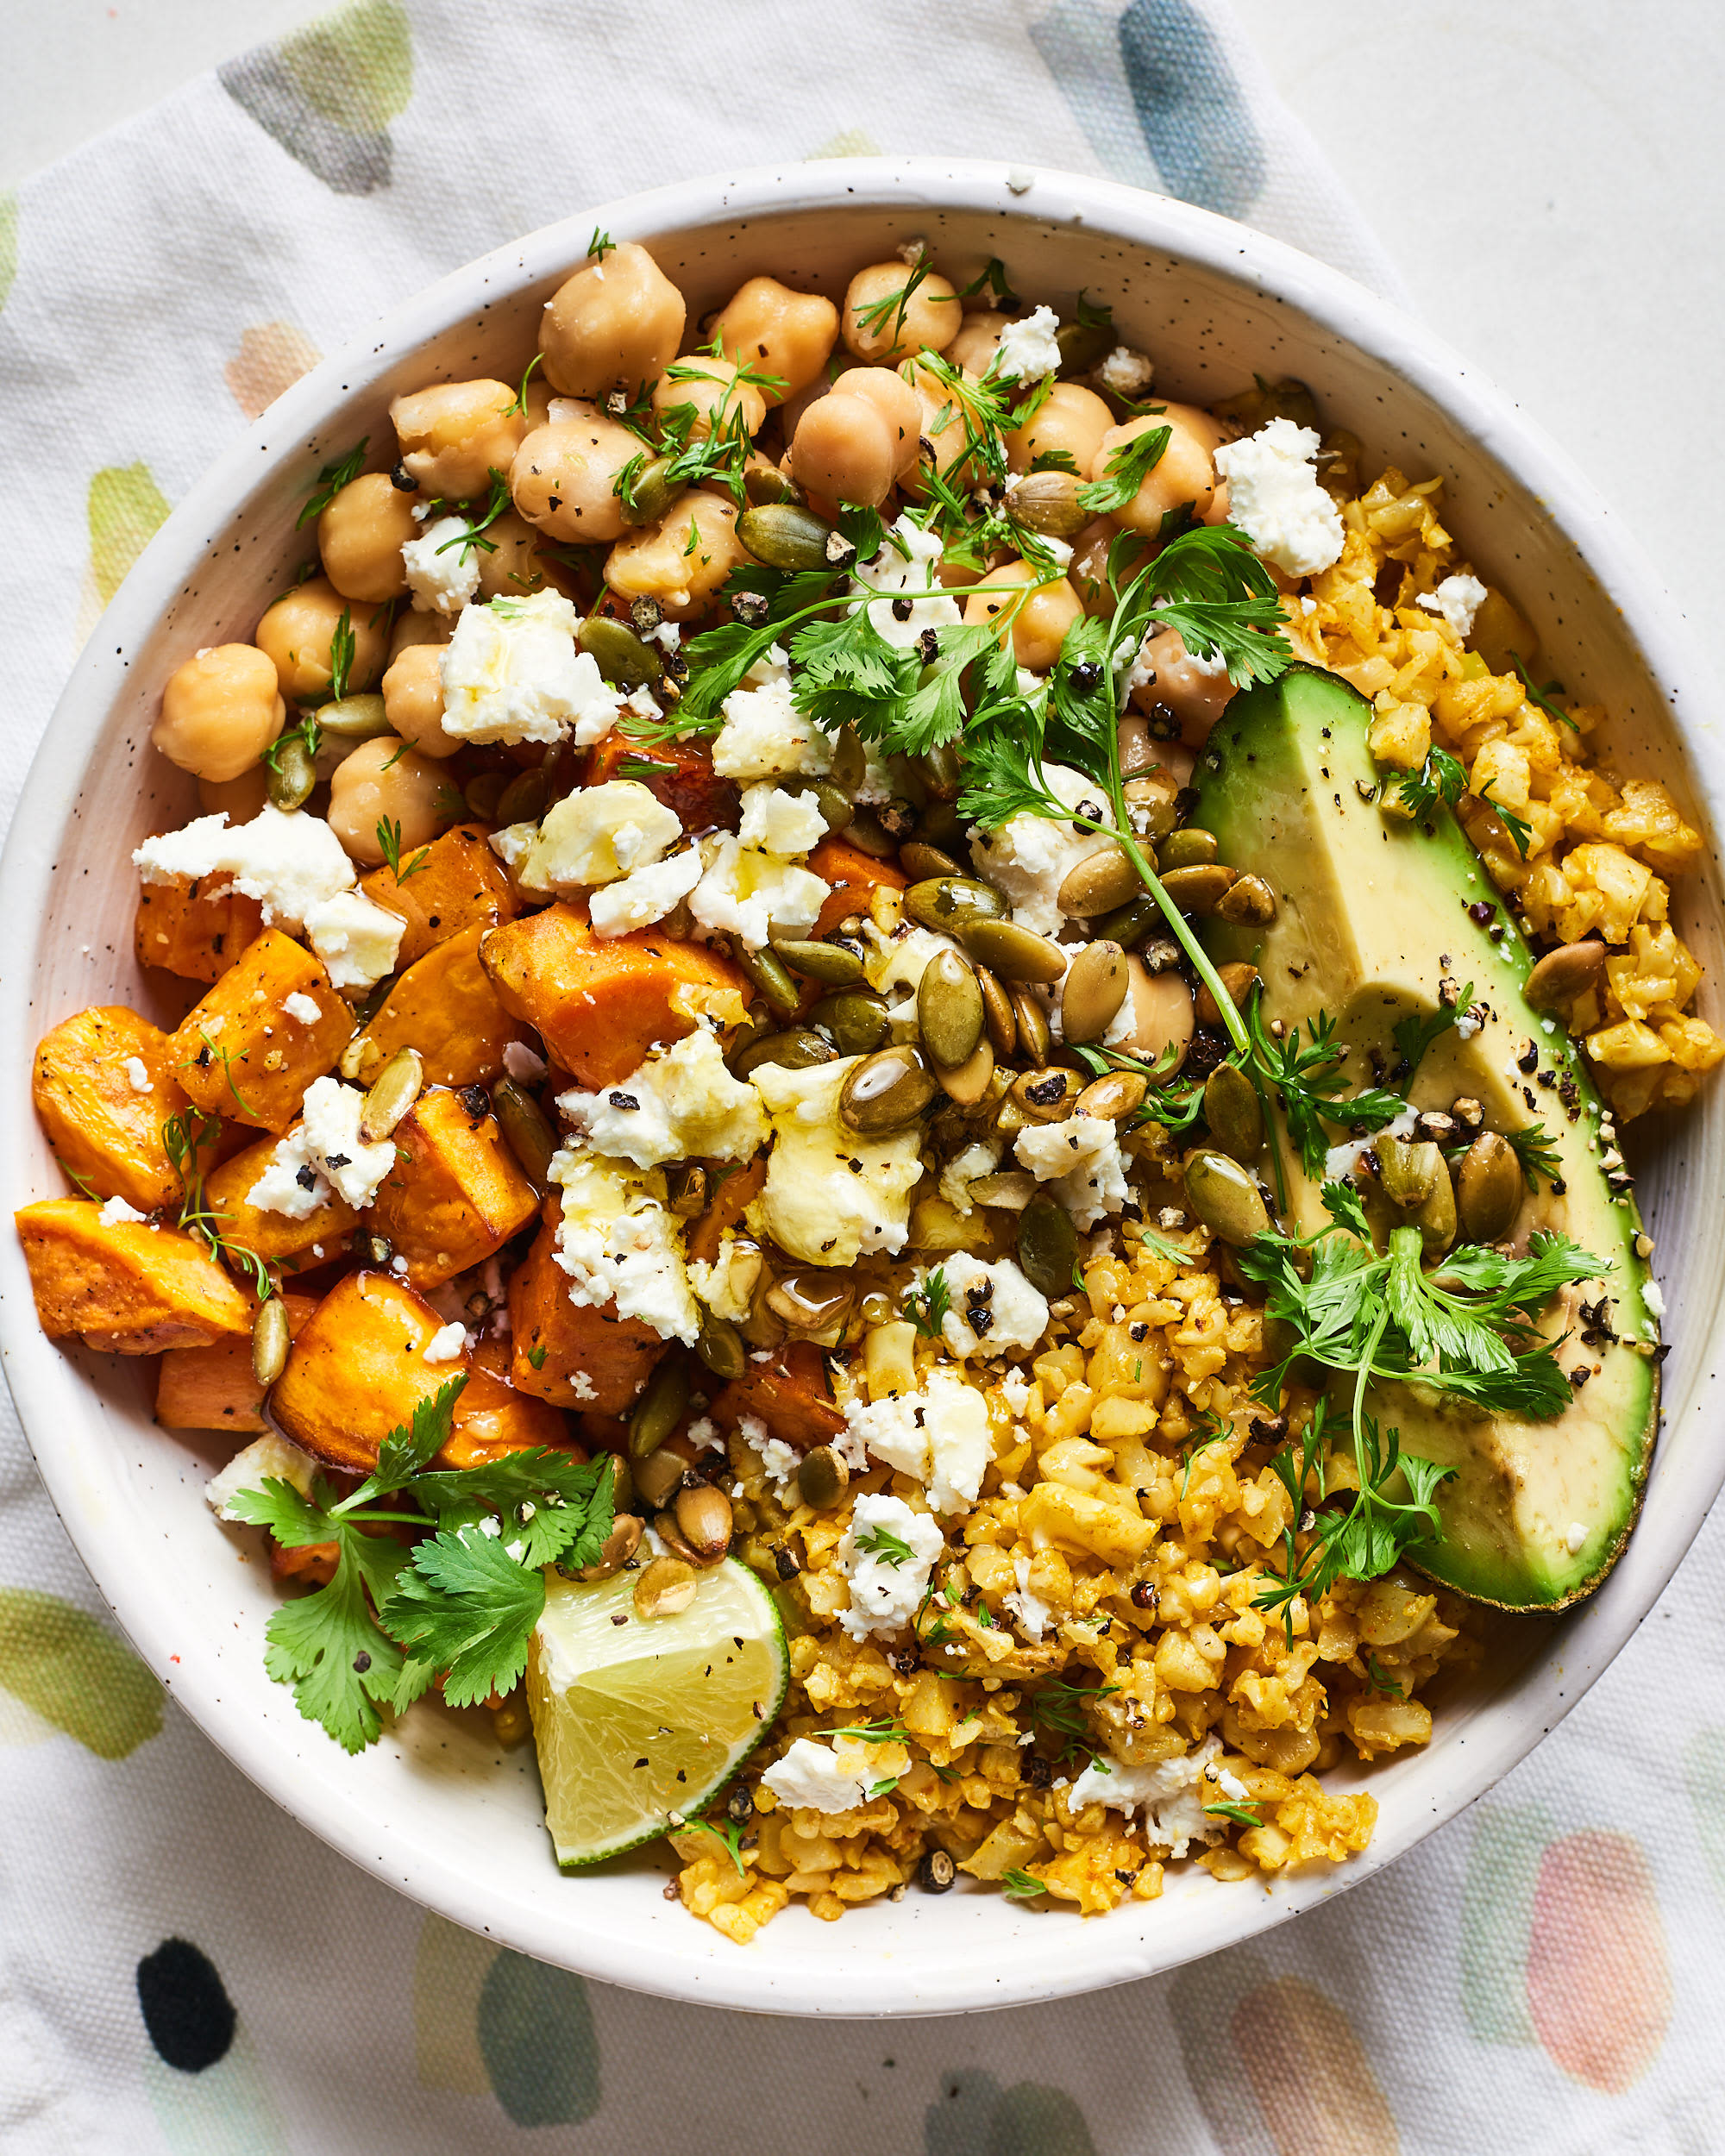 Recipe: Cauliflower Rice Lunch Bowl with Sweet Potatoes and Chickpeas